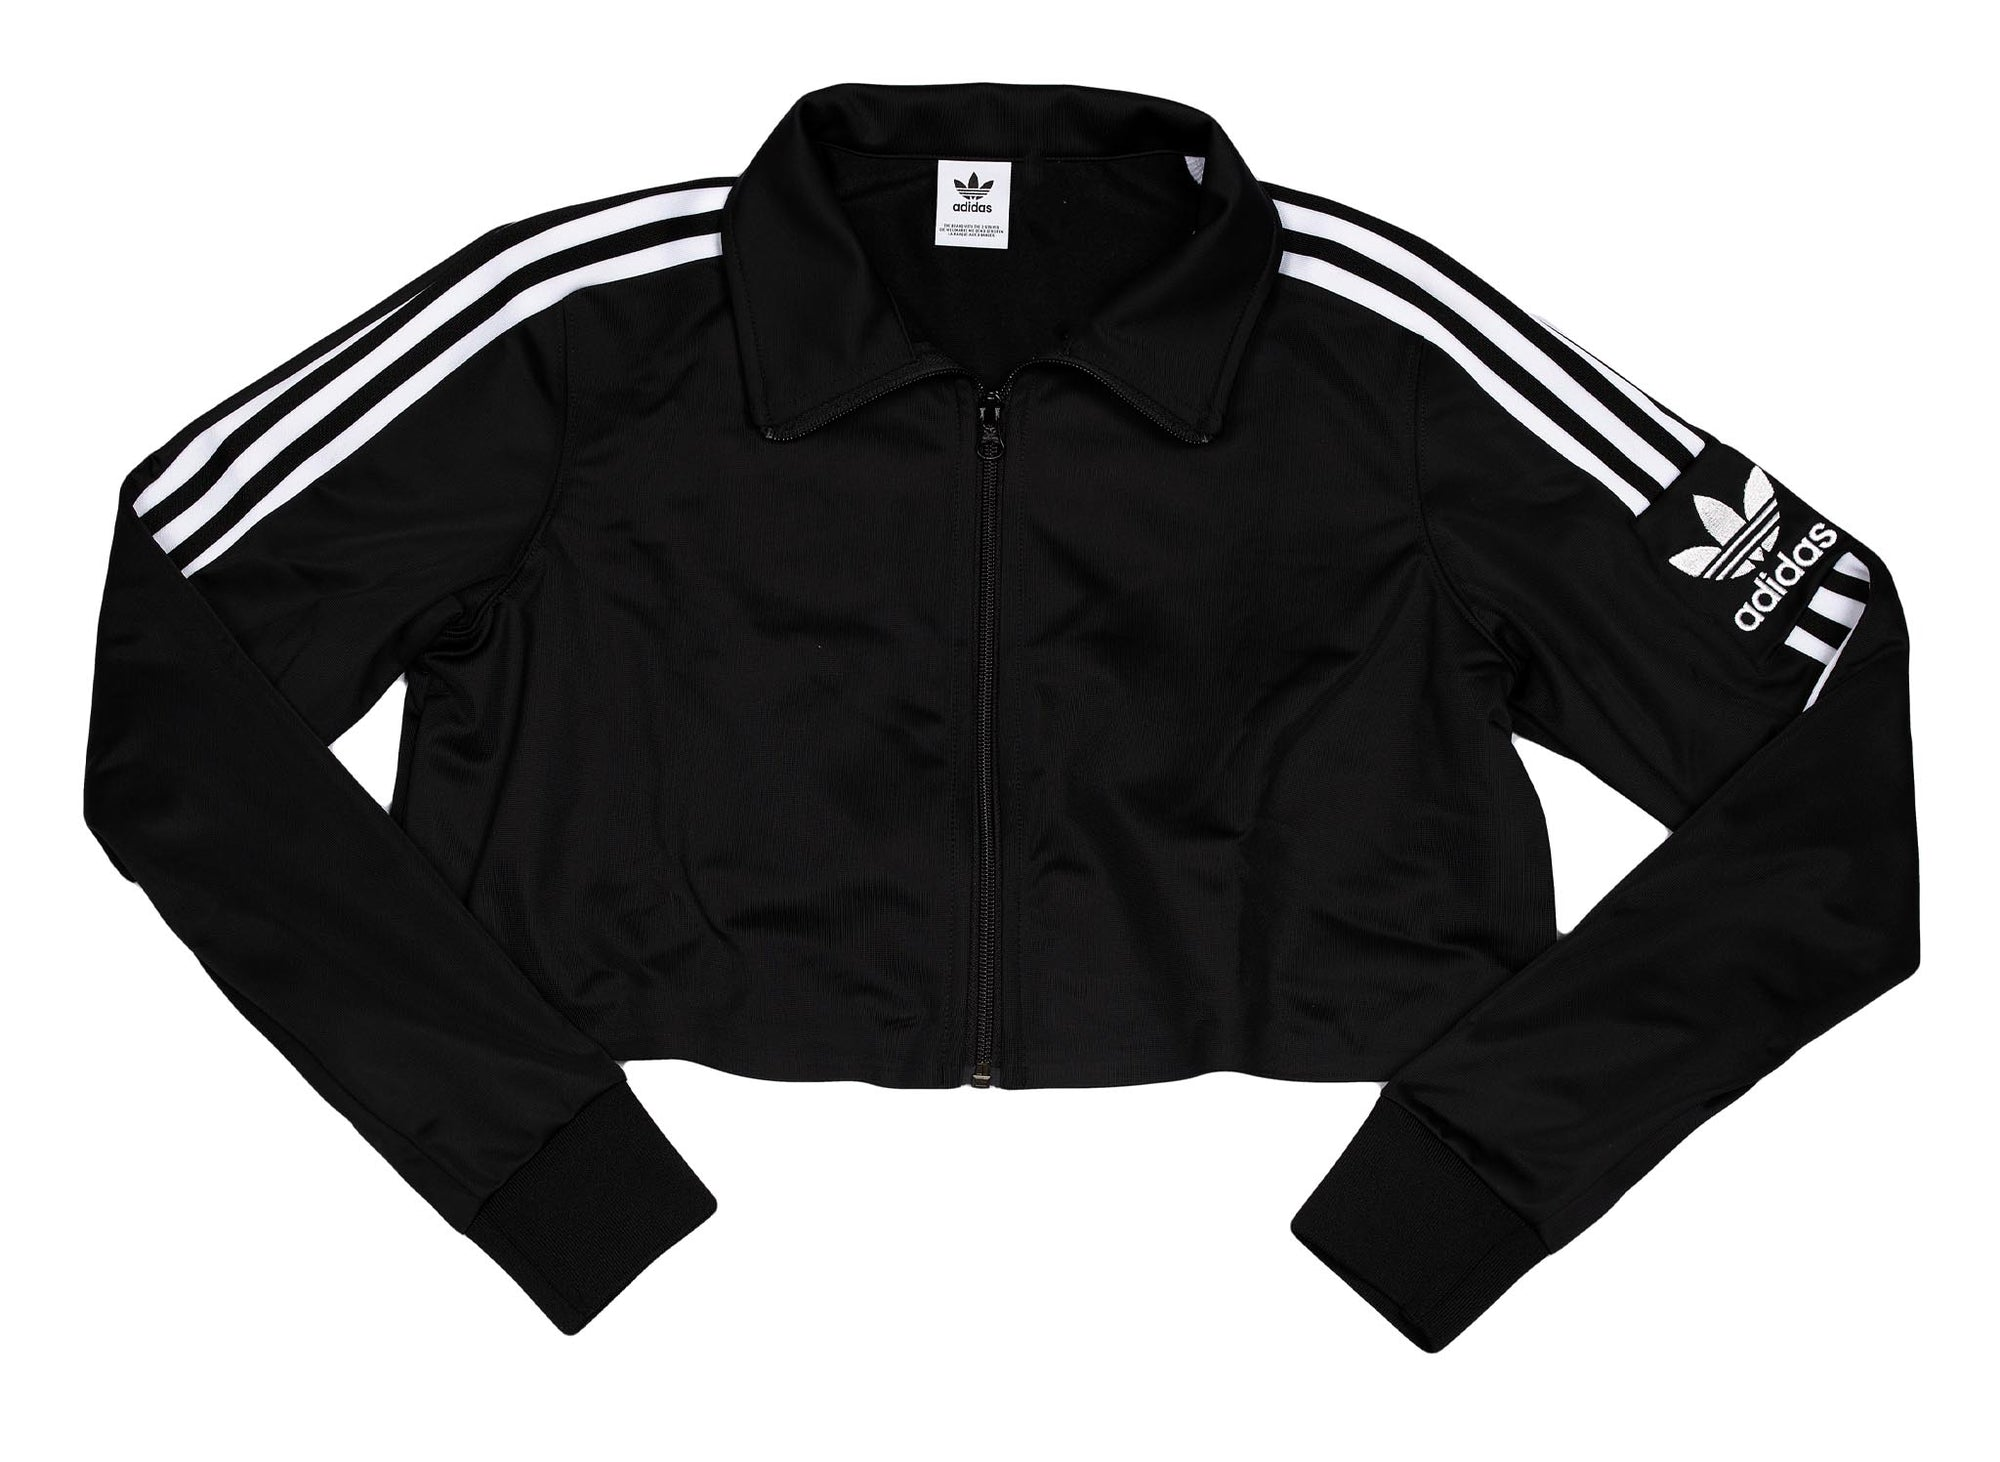 Adidas Women's Track Top